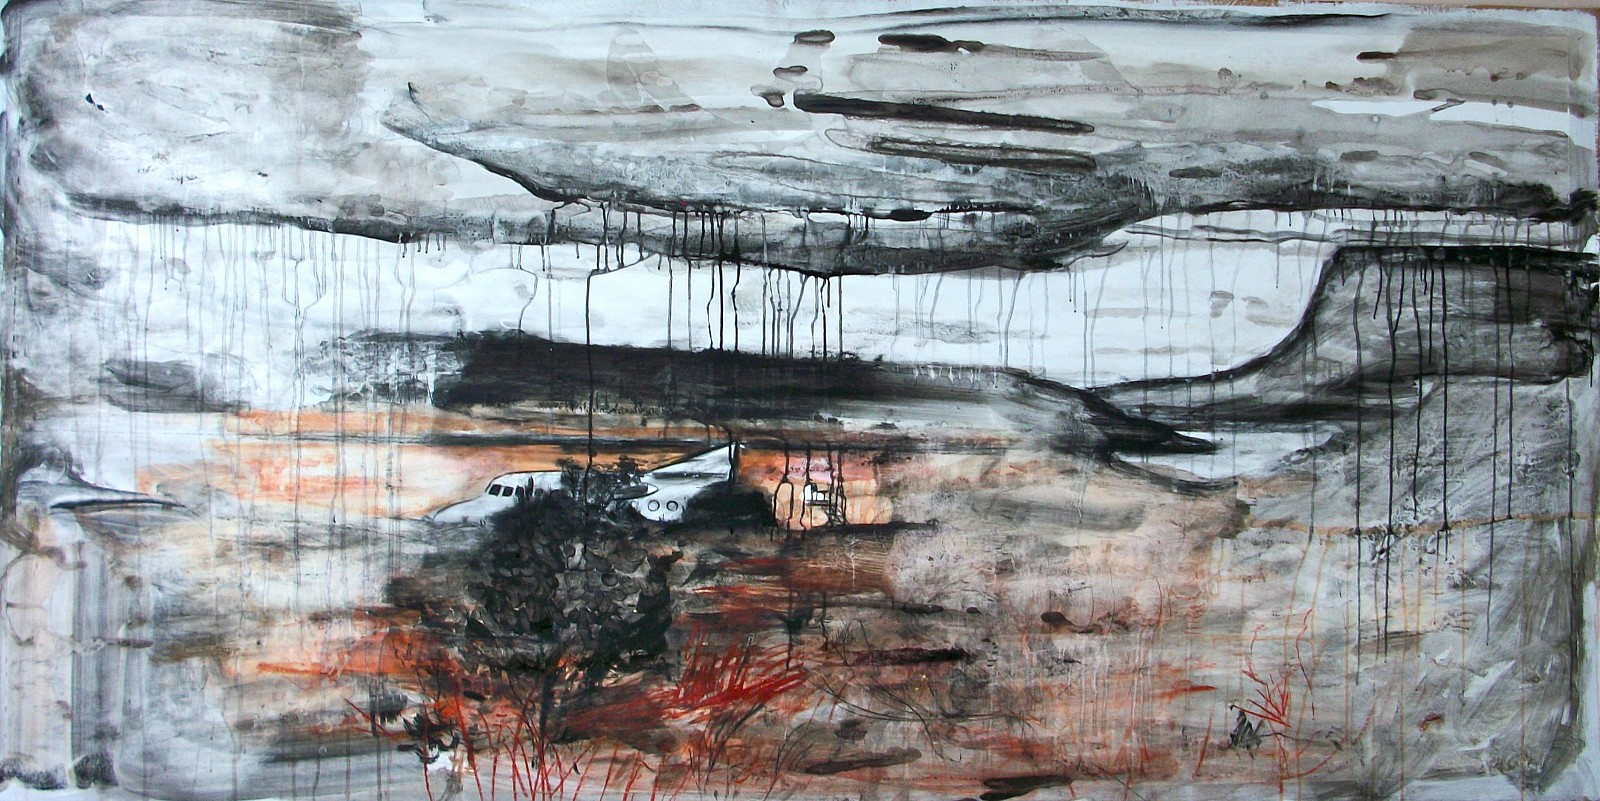 Andy Parsons   Landscape With Downed Plane , 2011-12   charcoal, chalk, ink, conte crayon on gessoed paper, 48 x 106 in.